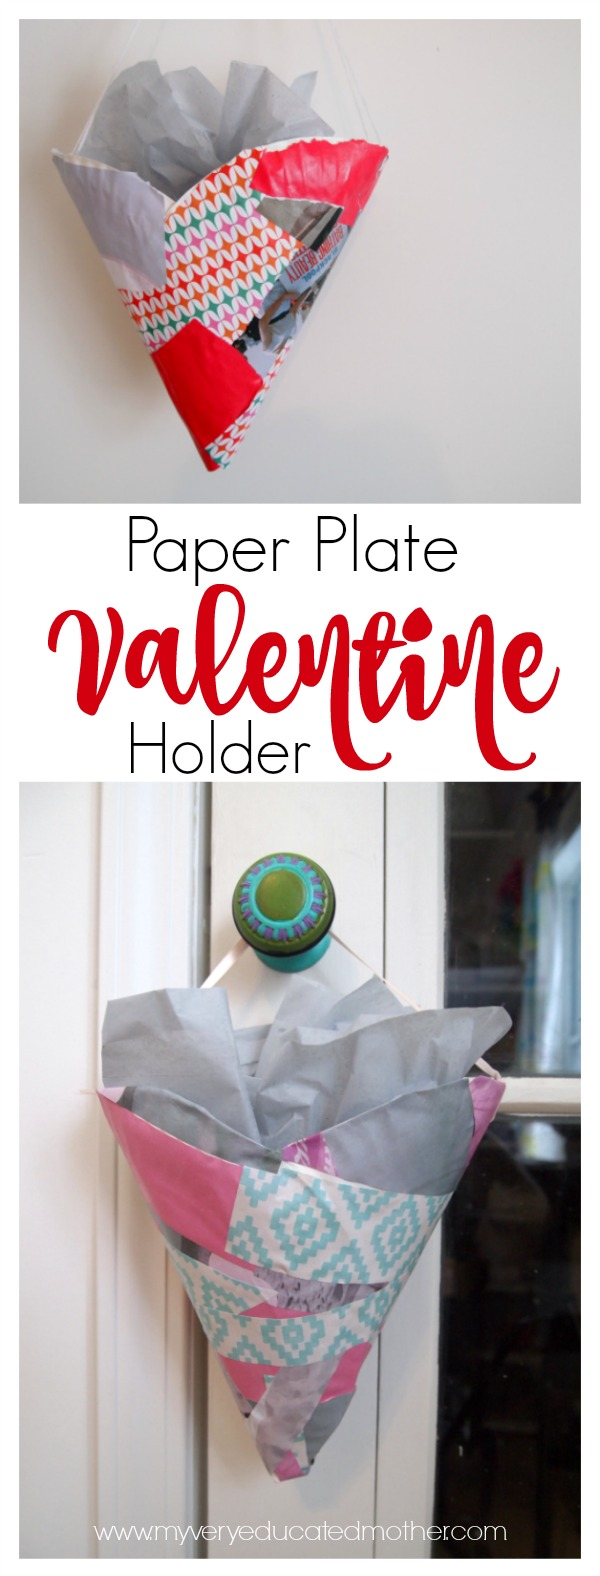 A great afternoon kids craft paper plate project to make this Valentine's Day!